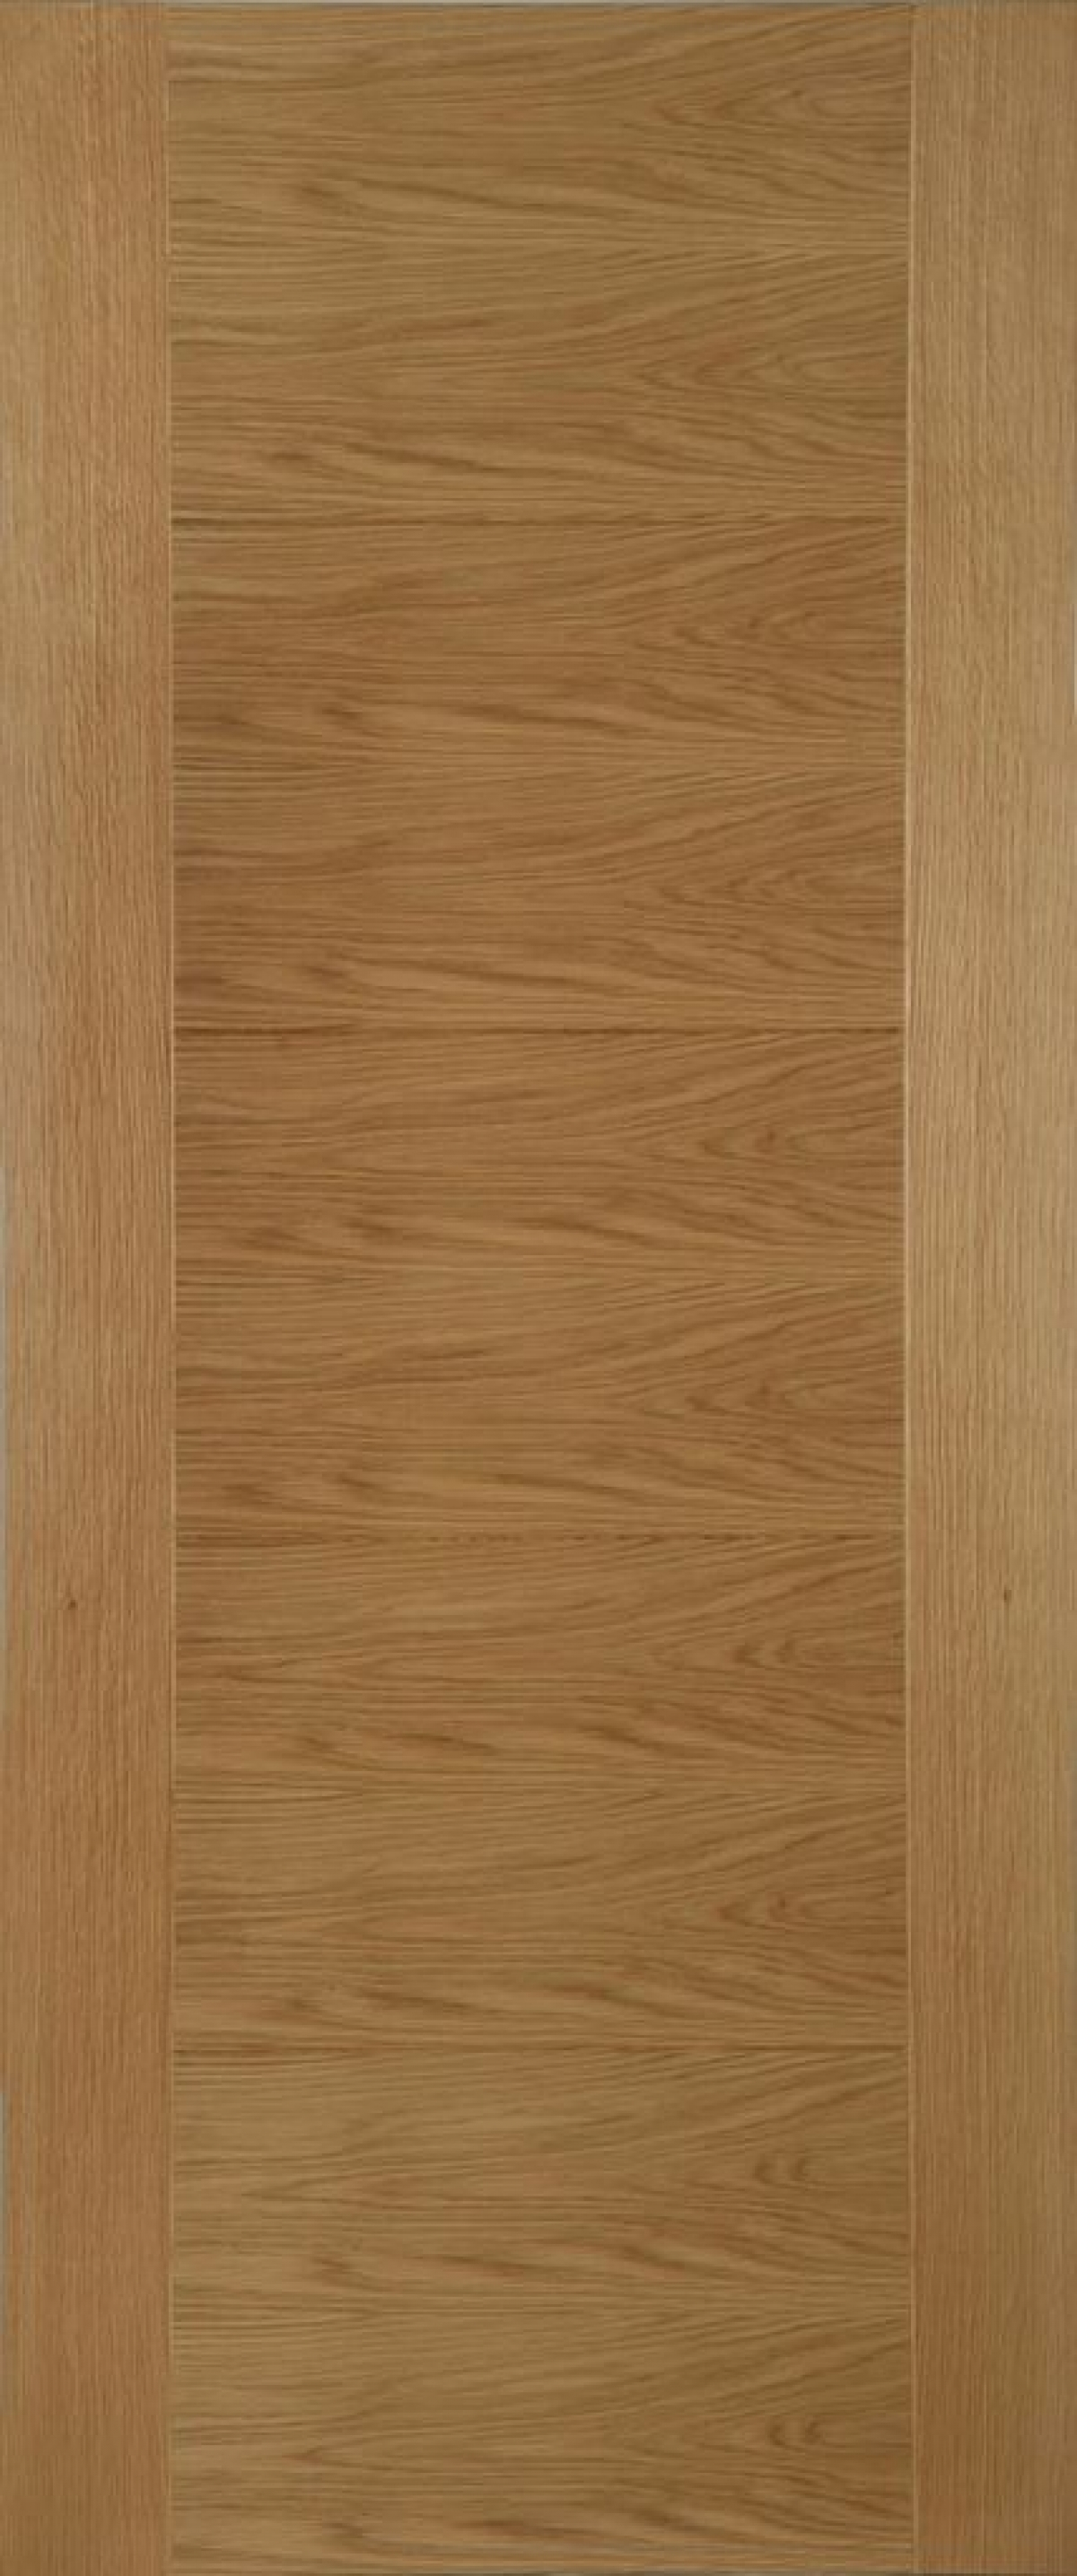 Oak Iseo SS - Prefinished